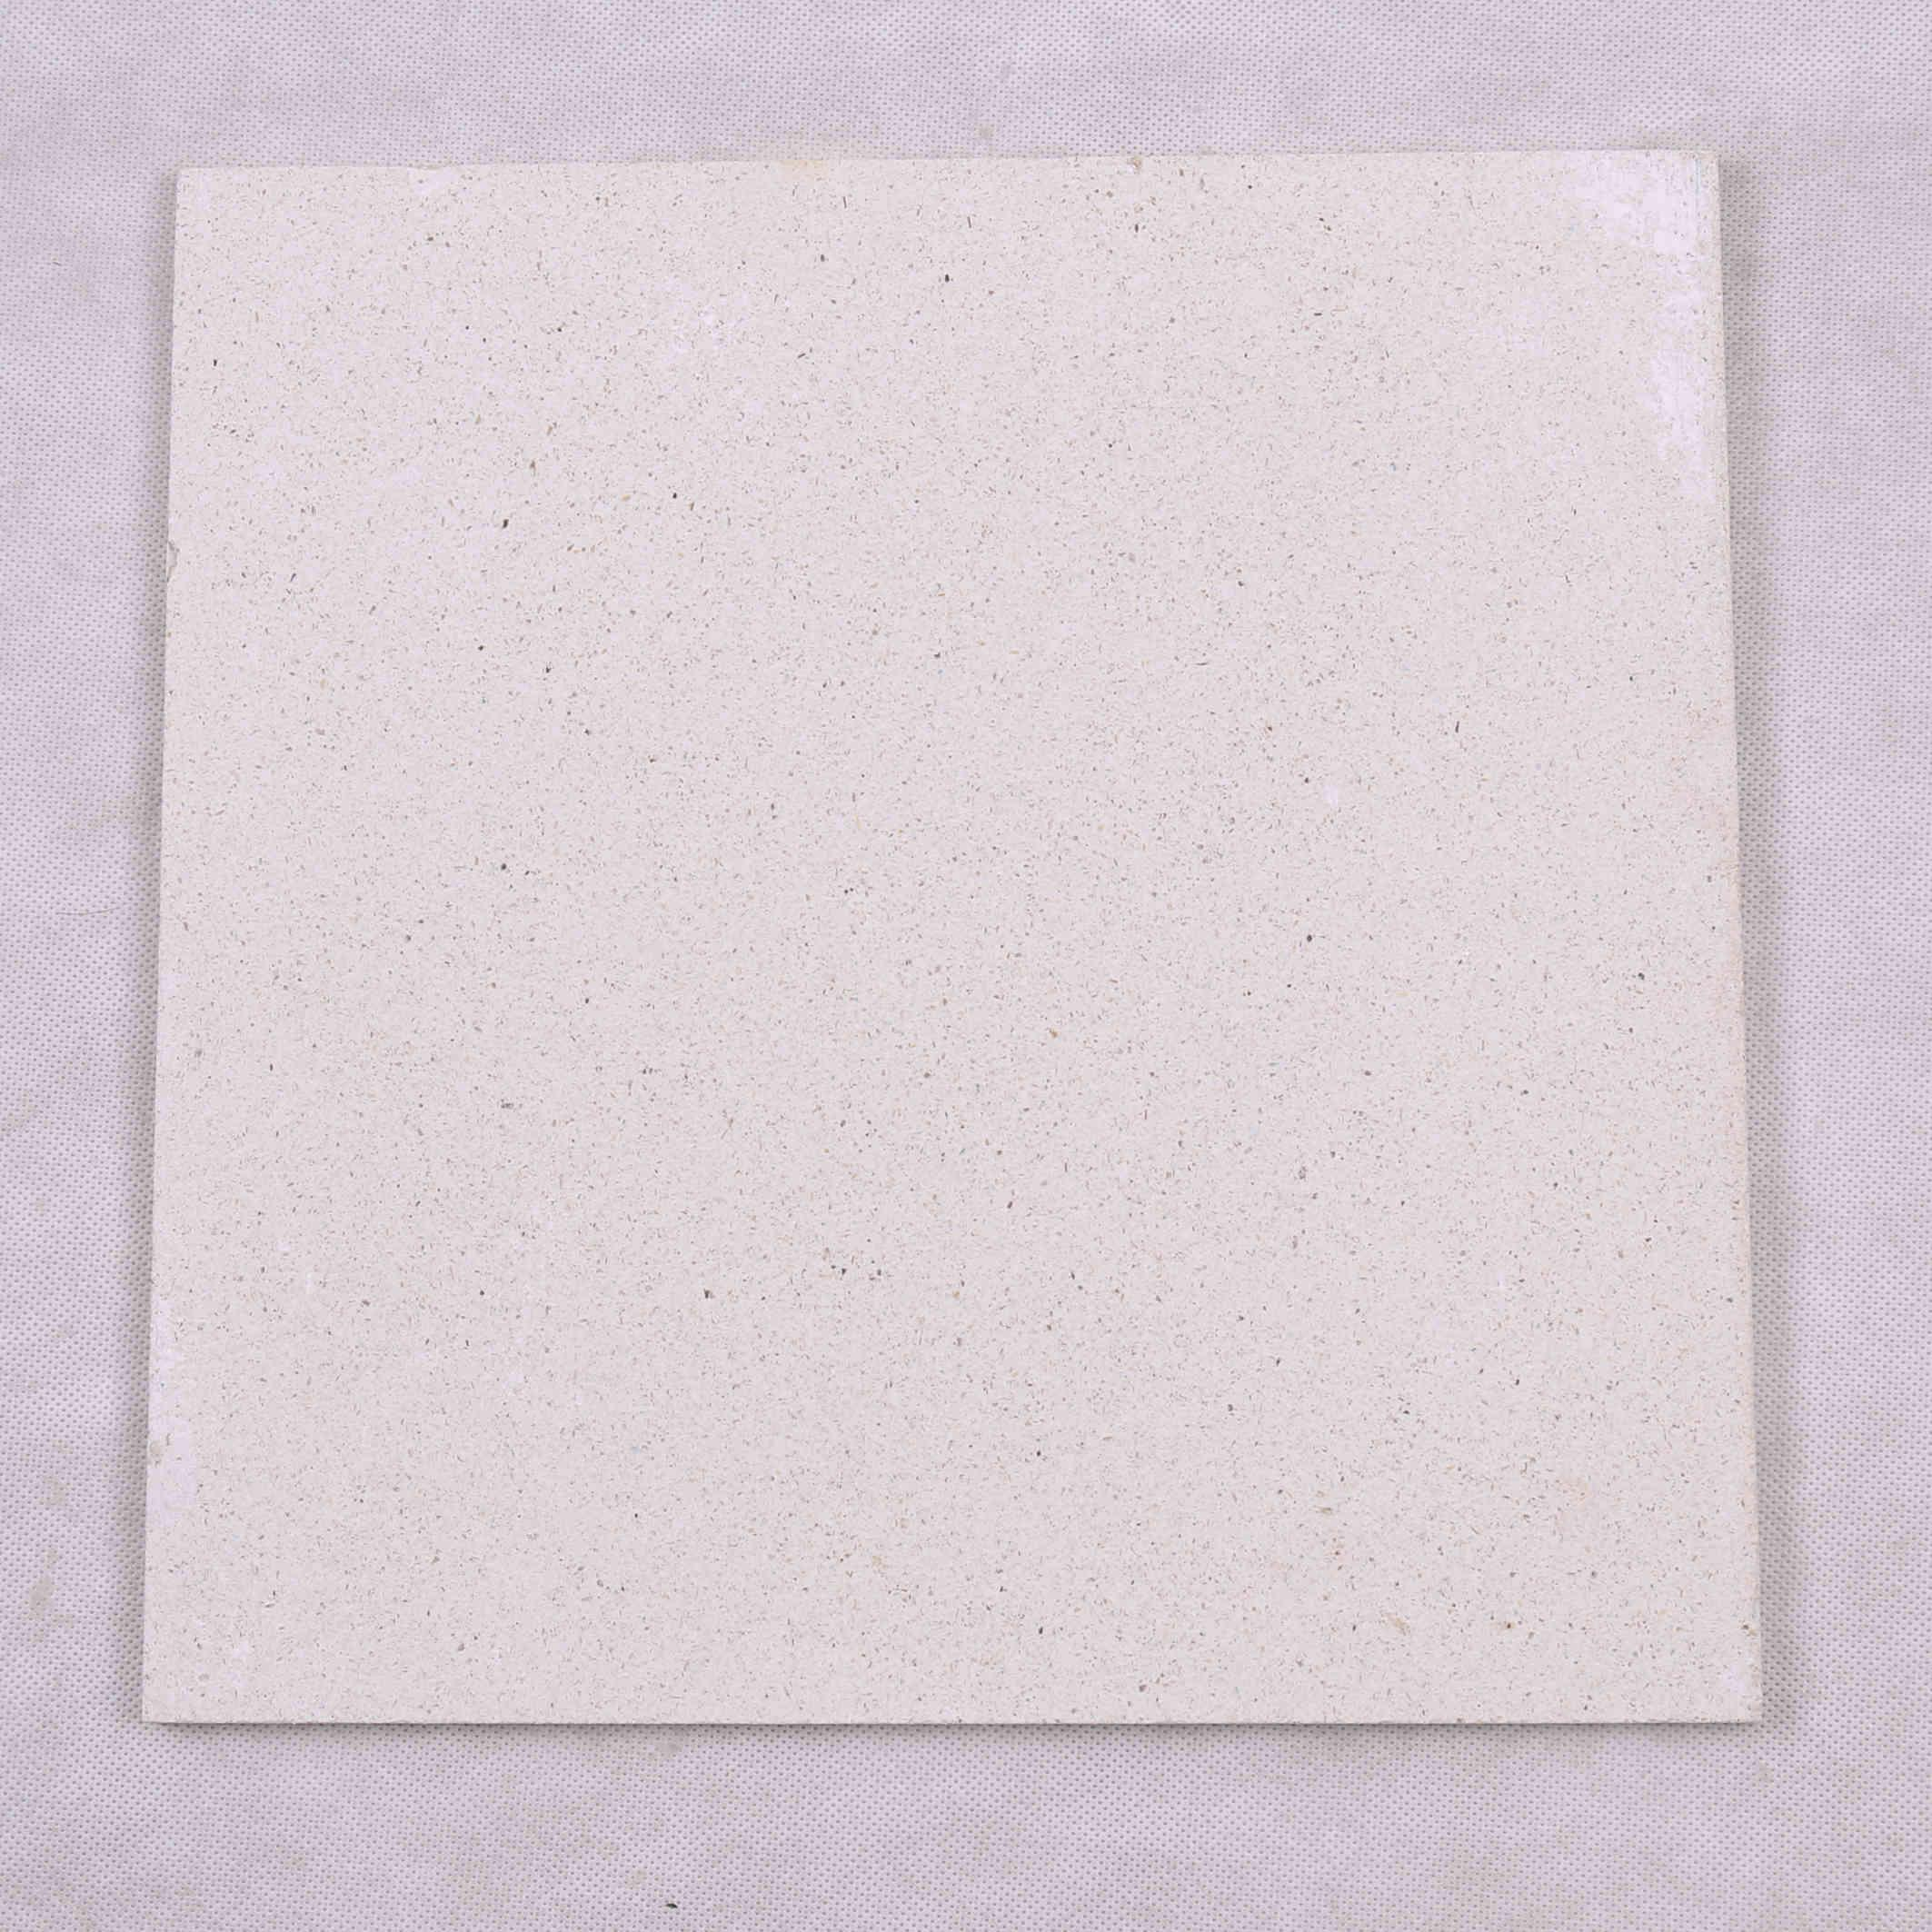 Heng Xing High-quality shell mosaic Suppliers-5